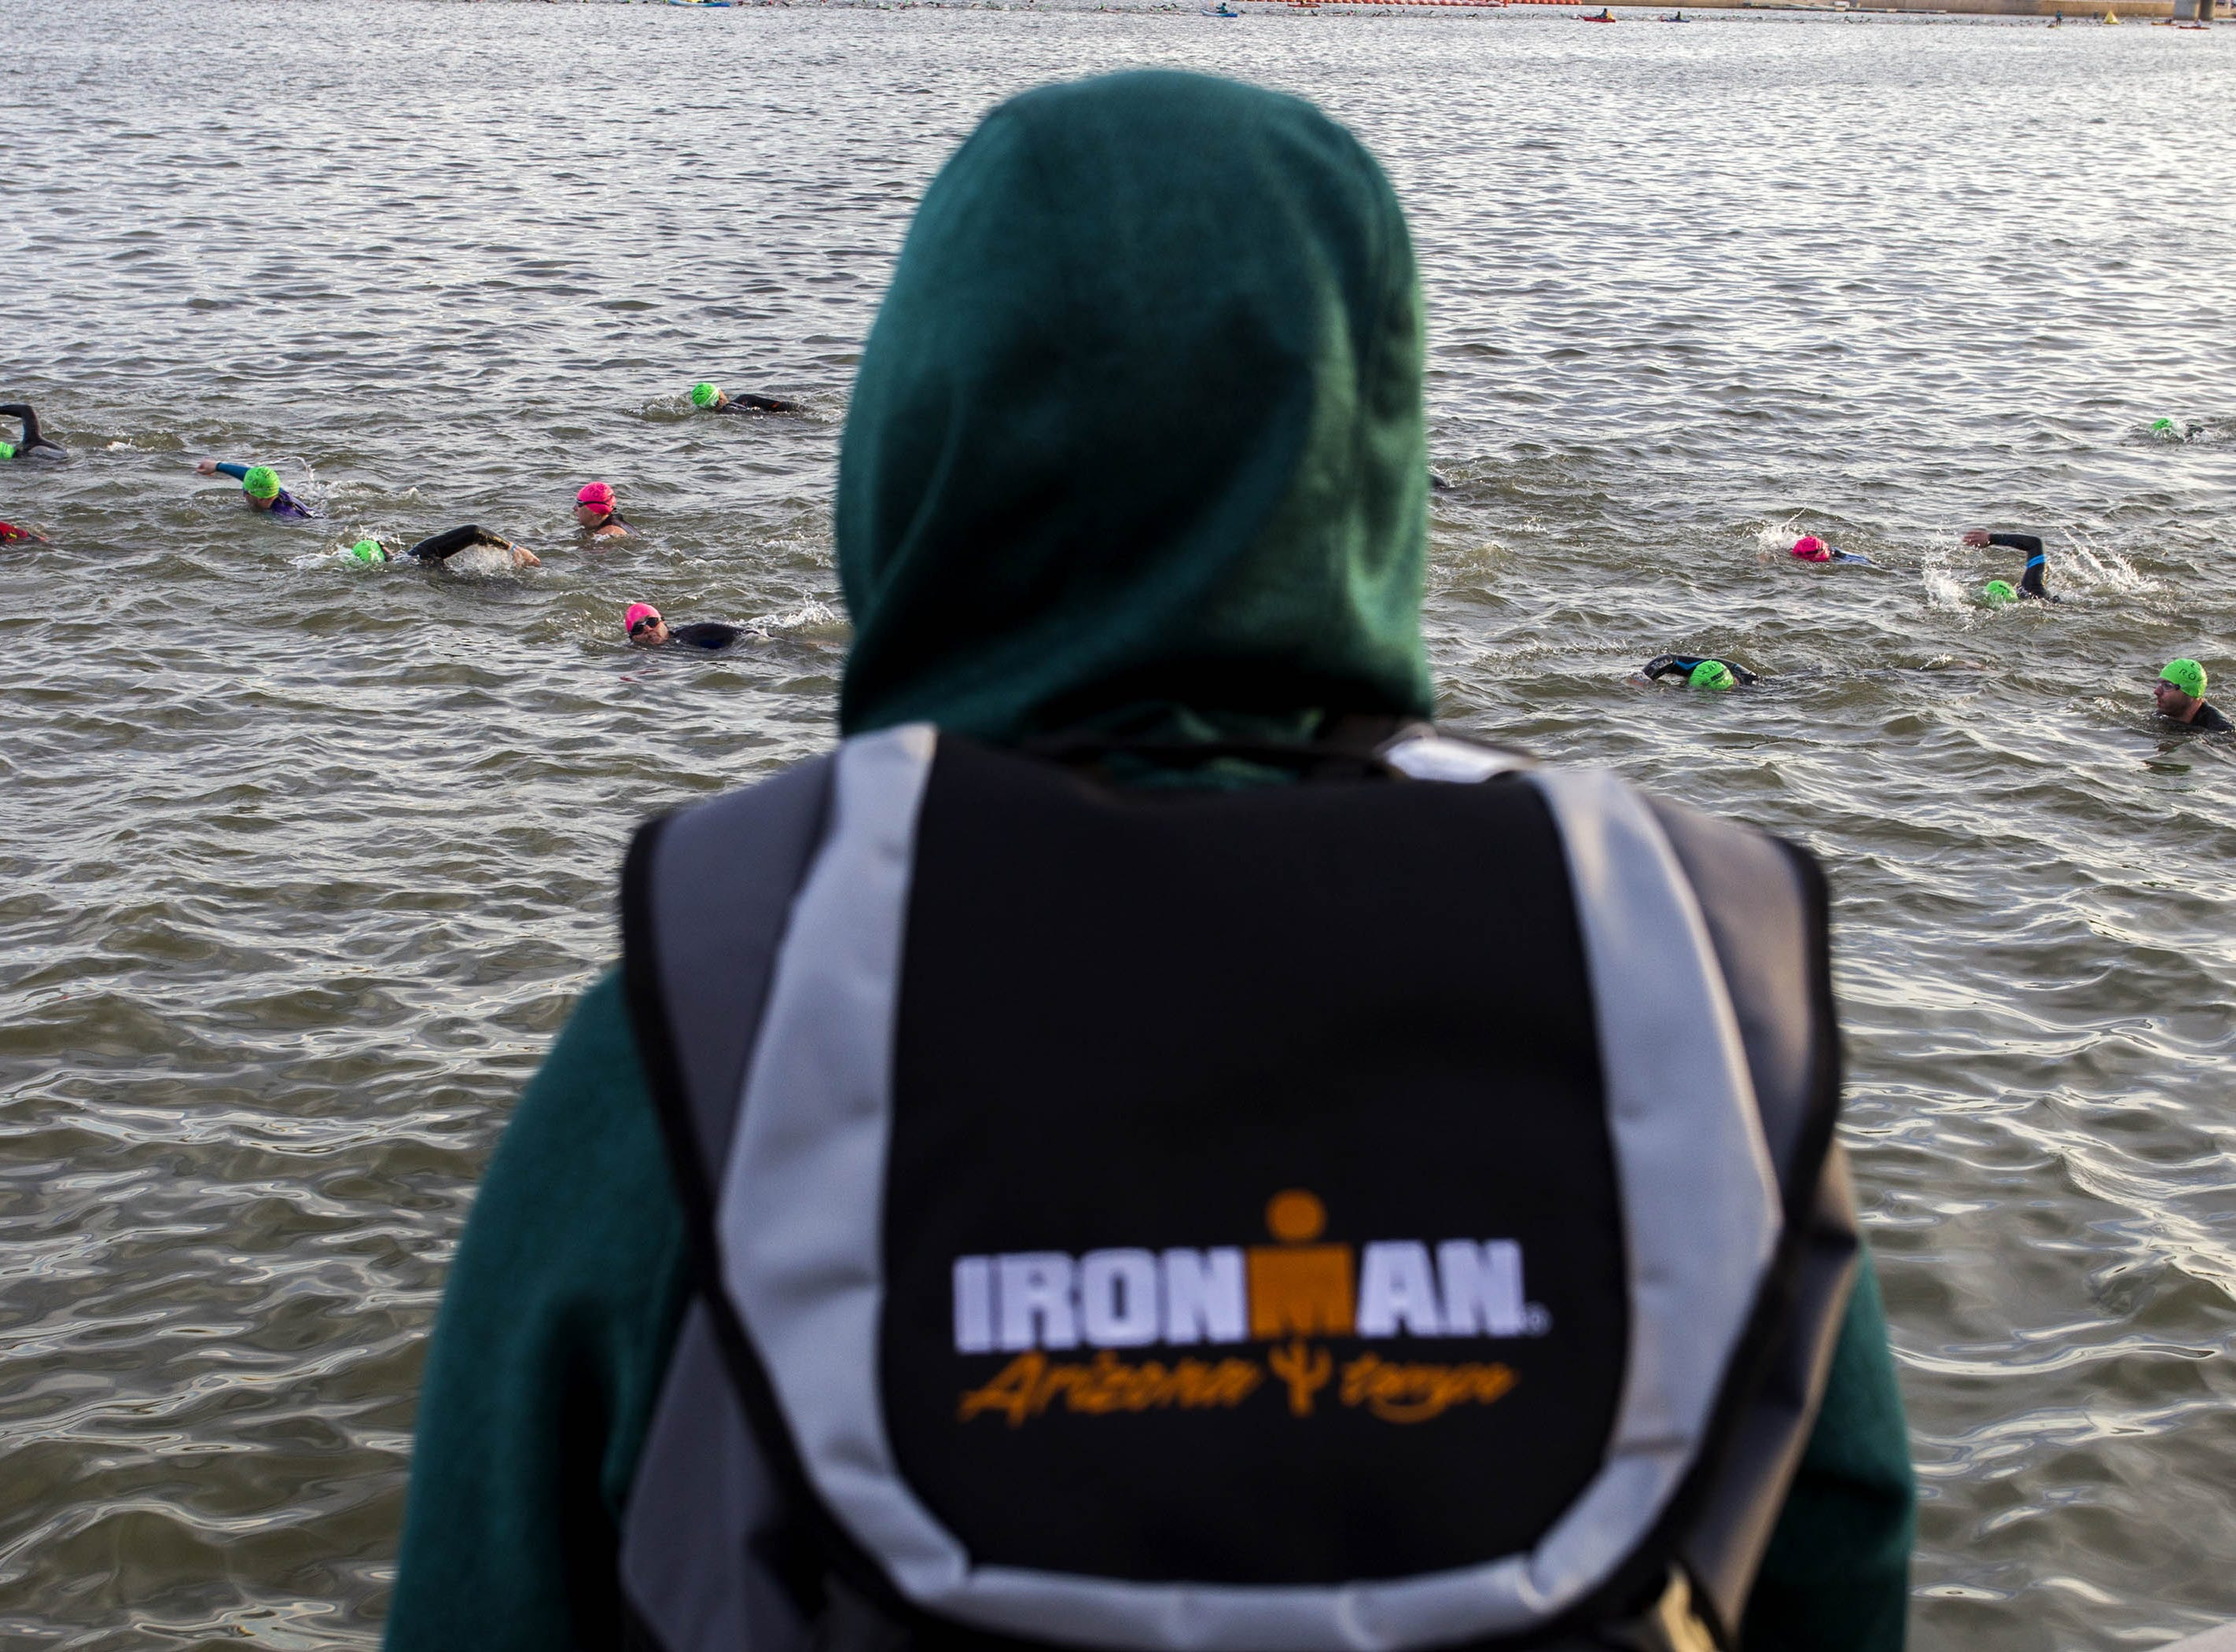 A fan of Ironman competitors watches as they start their day swimming during the Tempe Ironman at Tempe Town Lake Nov.18, 2018.